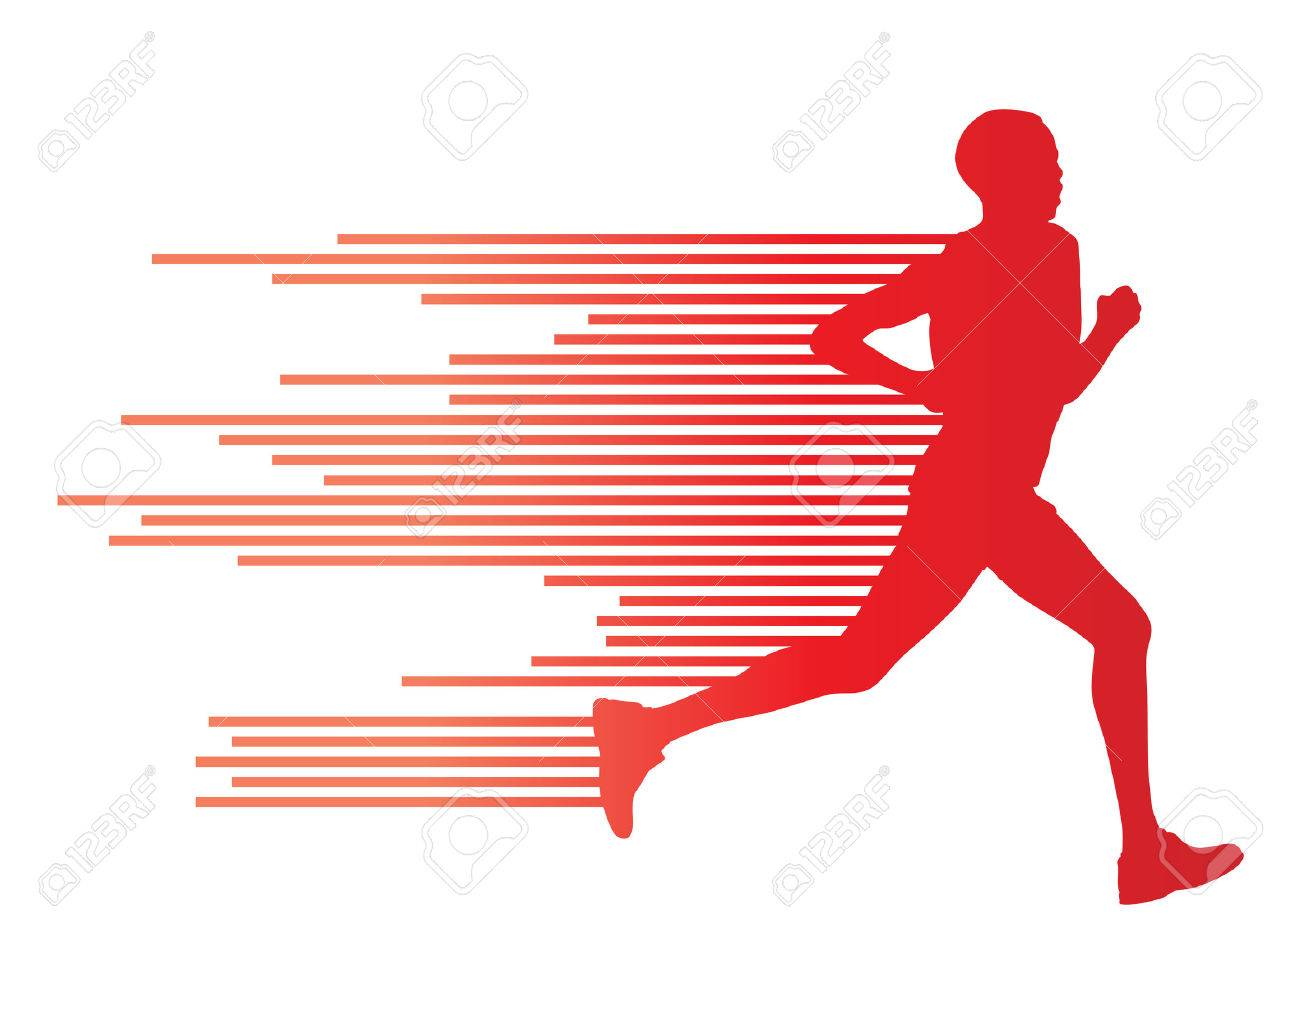 Man runner silhouette vector background template concept made of stripes - 36769515